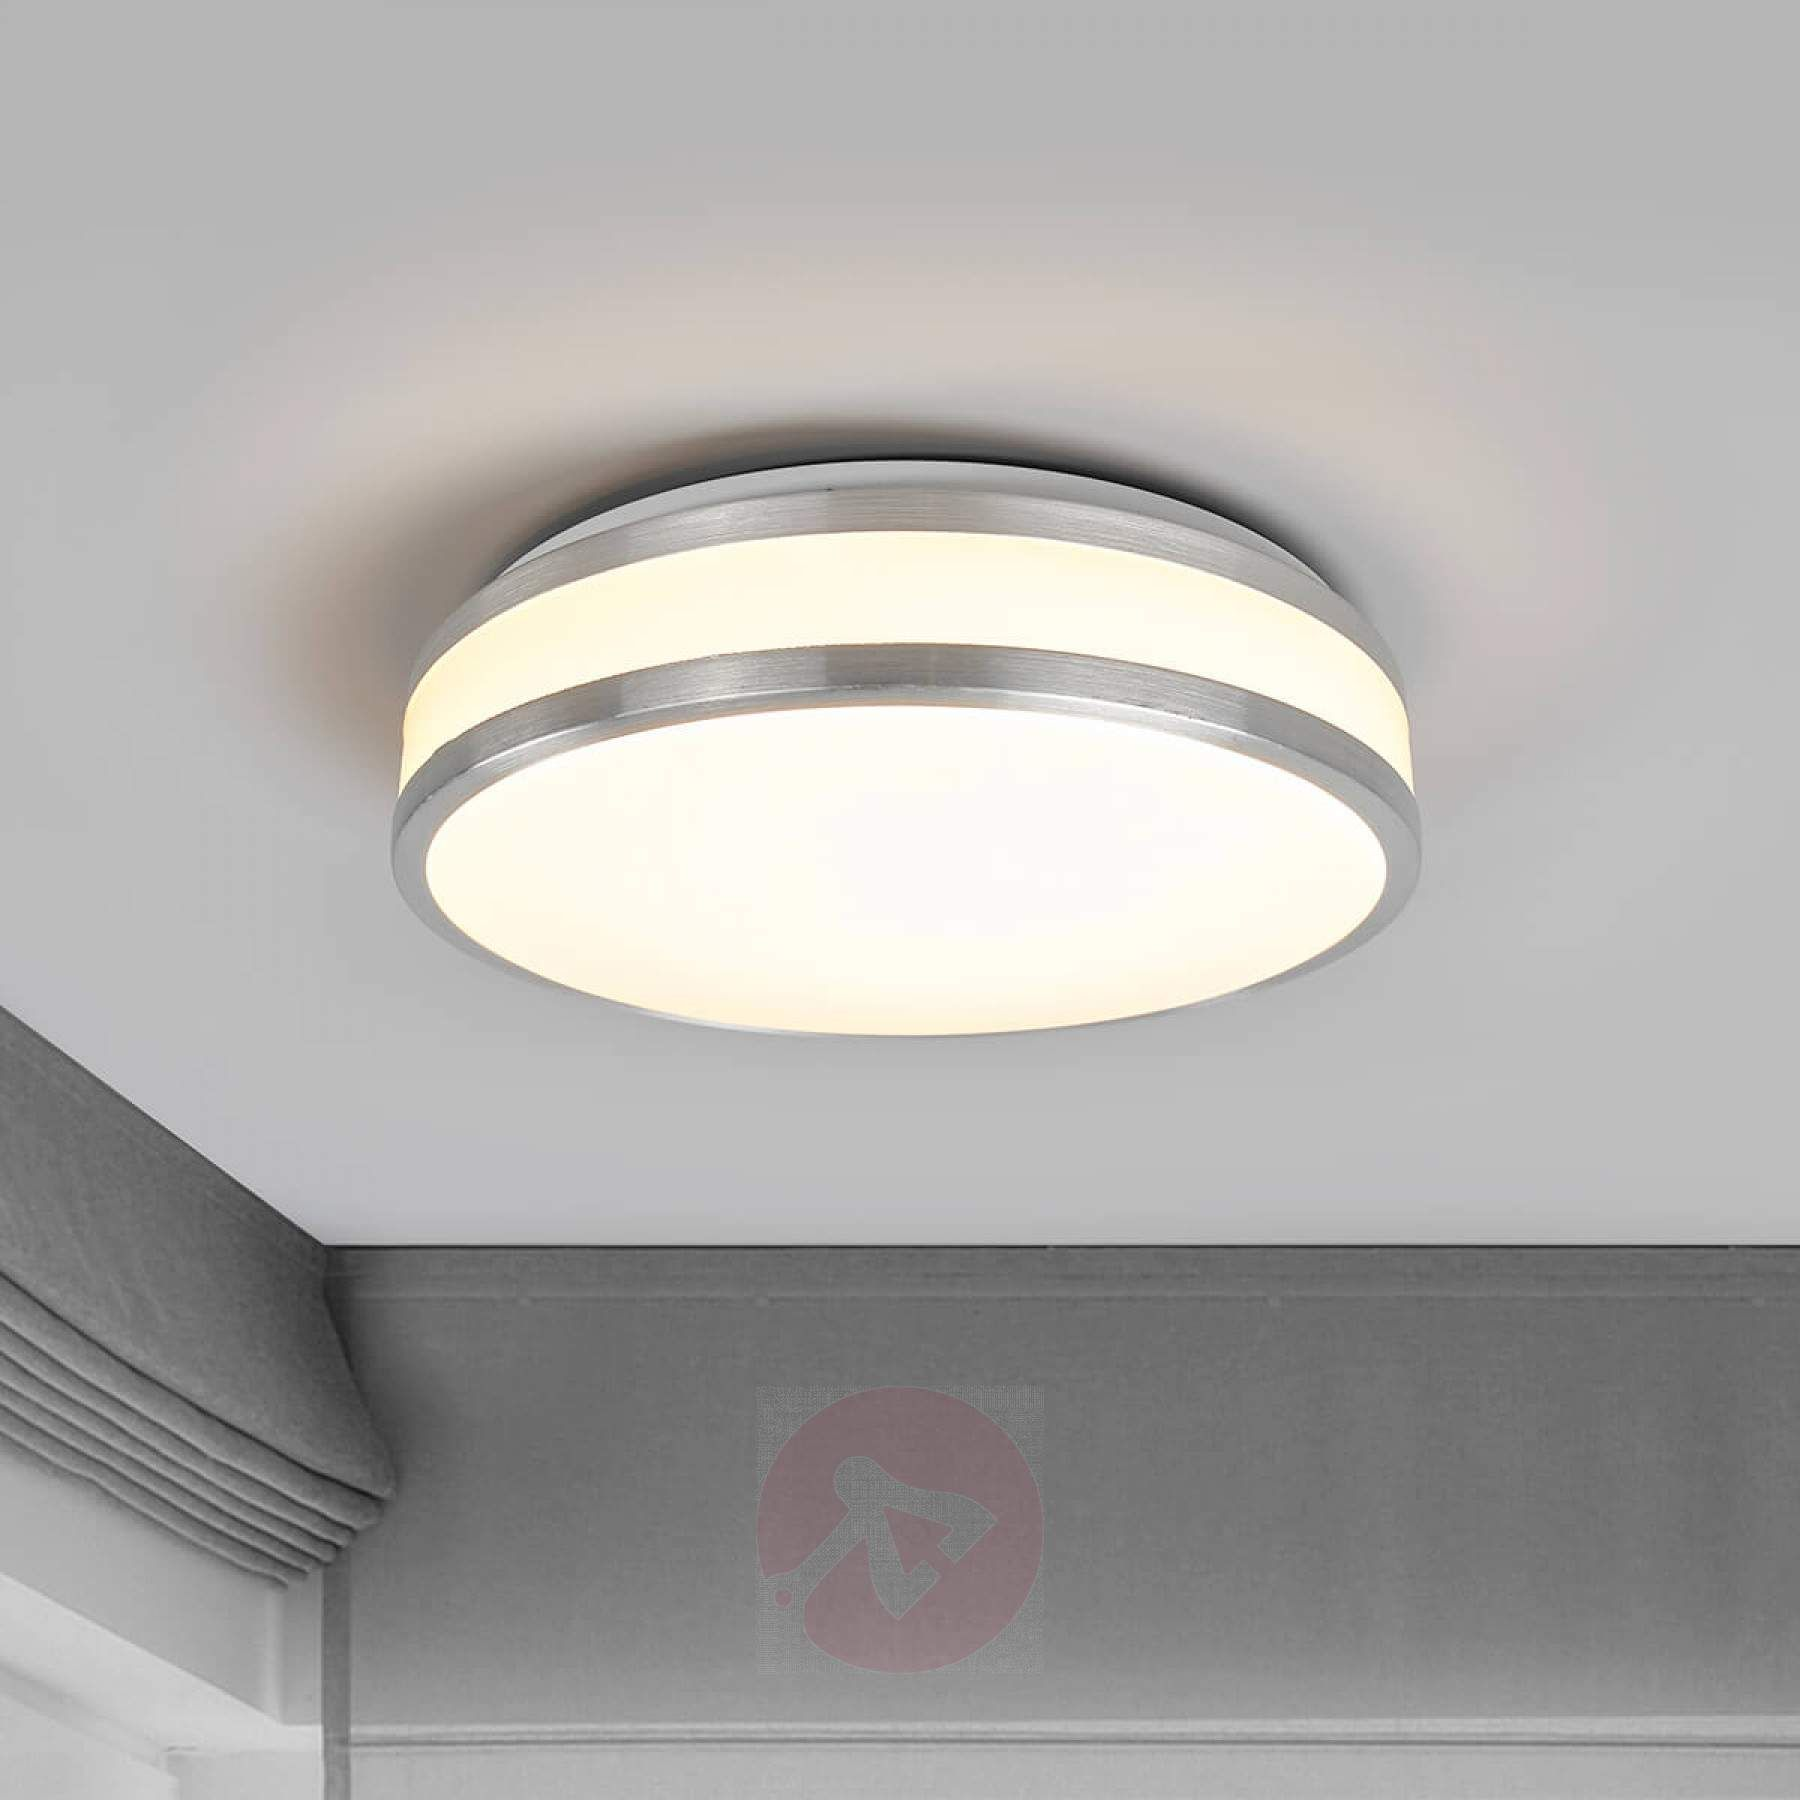 Edona Ceiling Lamp With Bright Leds Ceiling Lamp Ceiling